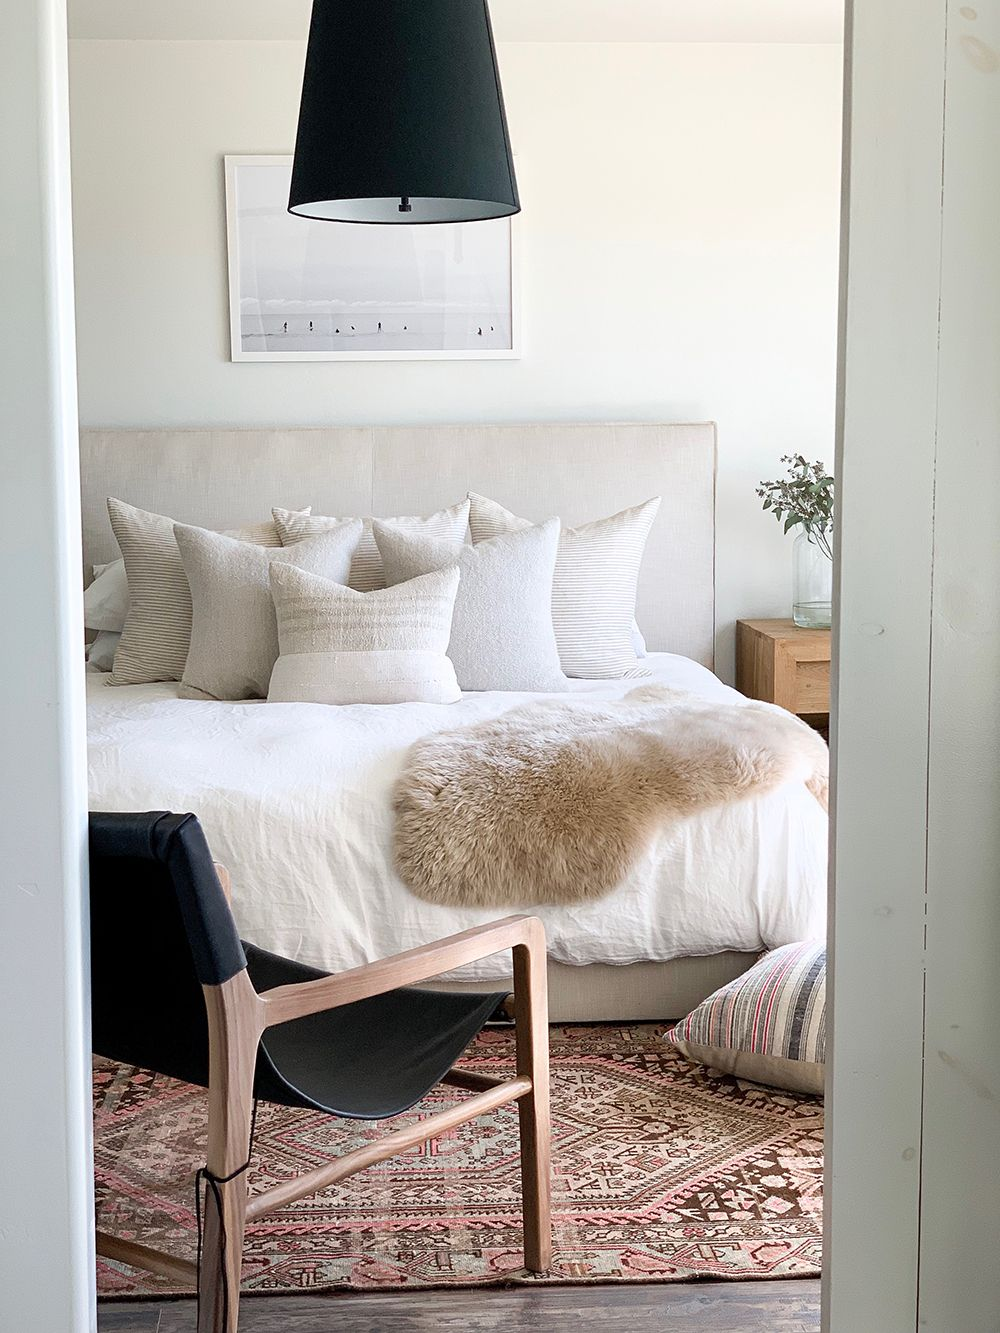 The Wythe Bed In Natural Performance Washed Linen The Hayes Chairs In Black Leather And Walnut Wood Make Their D Home Decor Bedroom Home Bedroom Inspirations